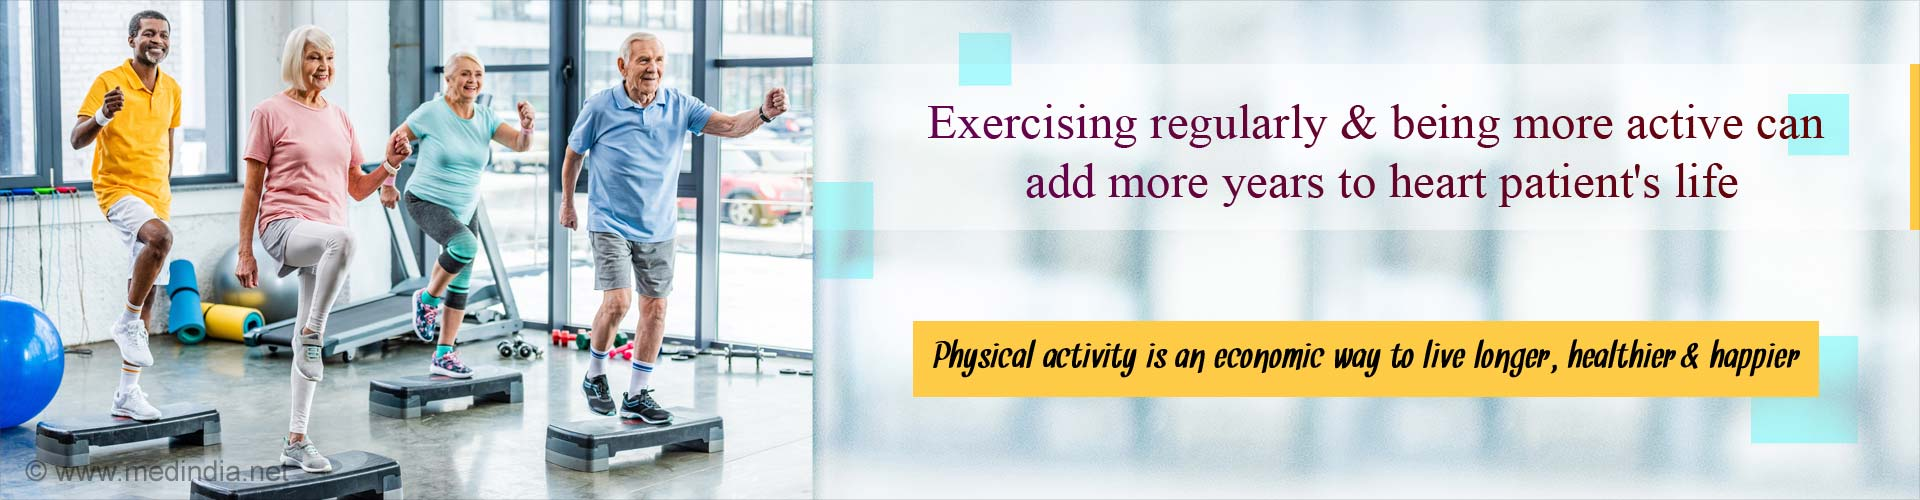 Exercising regularly and being more active can add more years to heart patient's life. Physical activity is an economic way to live longer, healthier and happier.